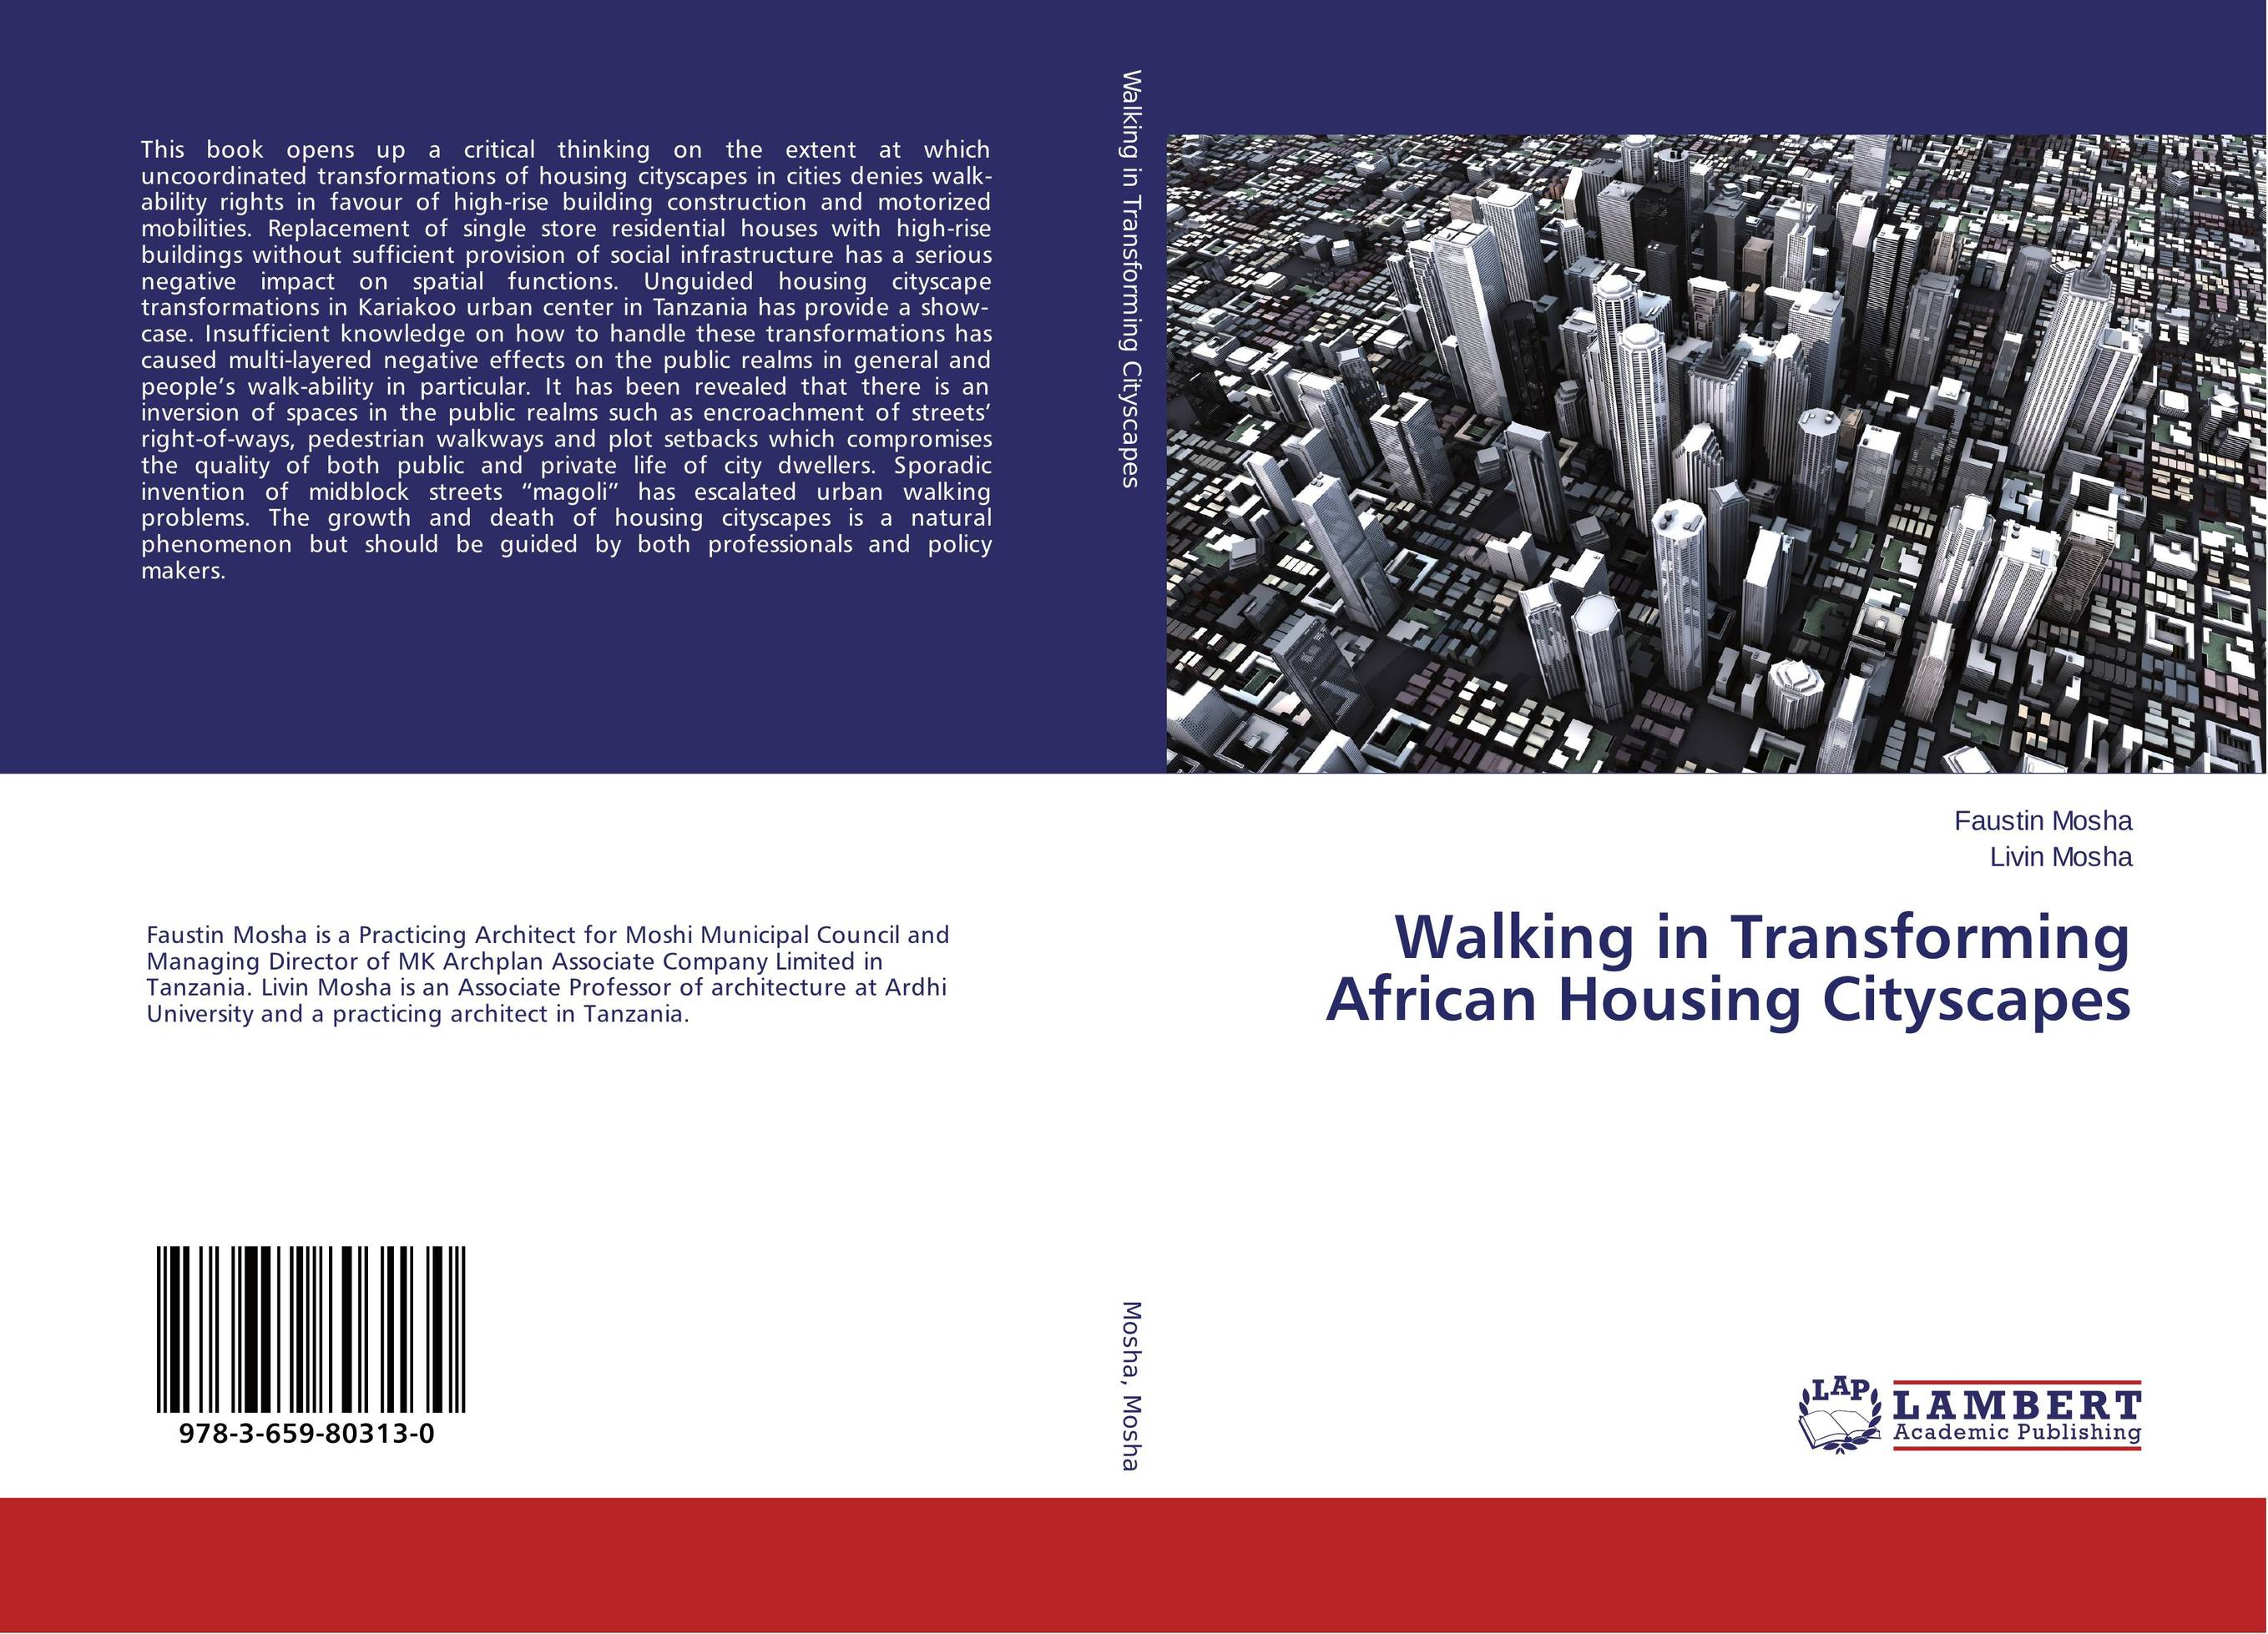 Walking in Transforming African Housing Cityscapes social housing in glasgow volume 2